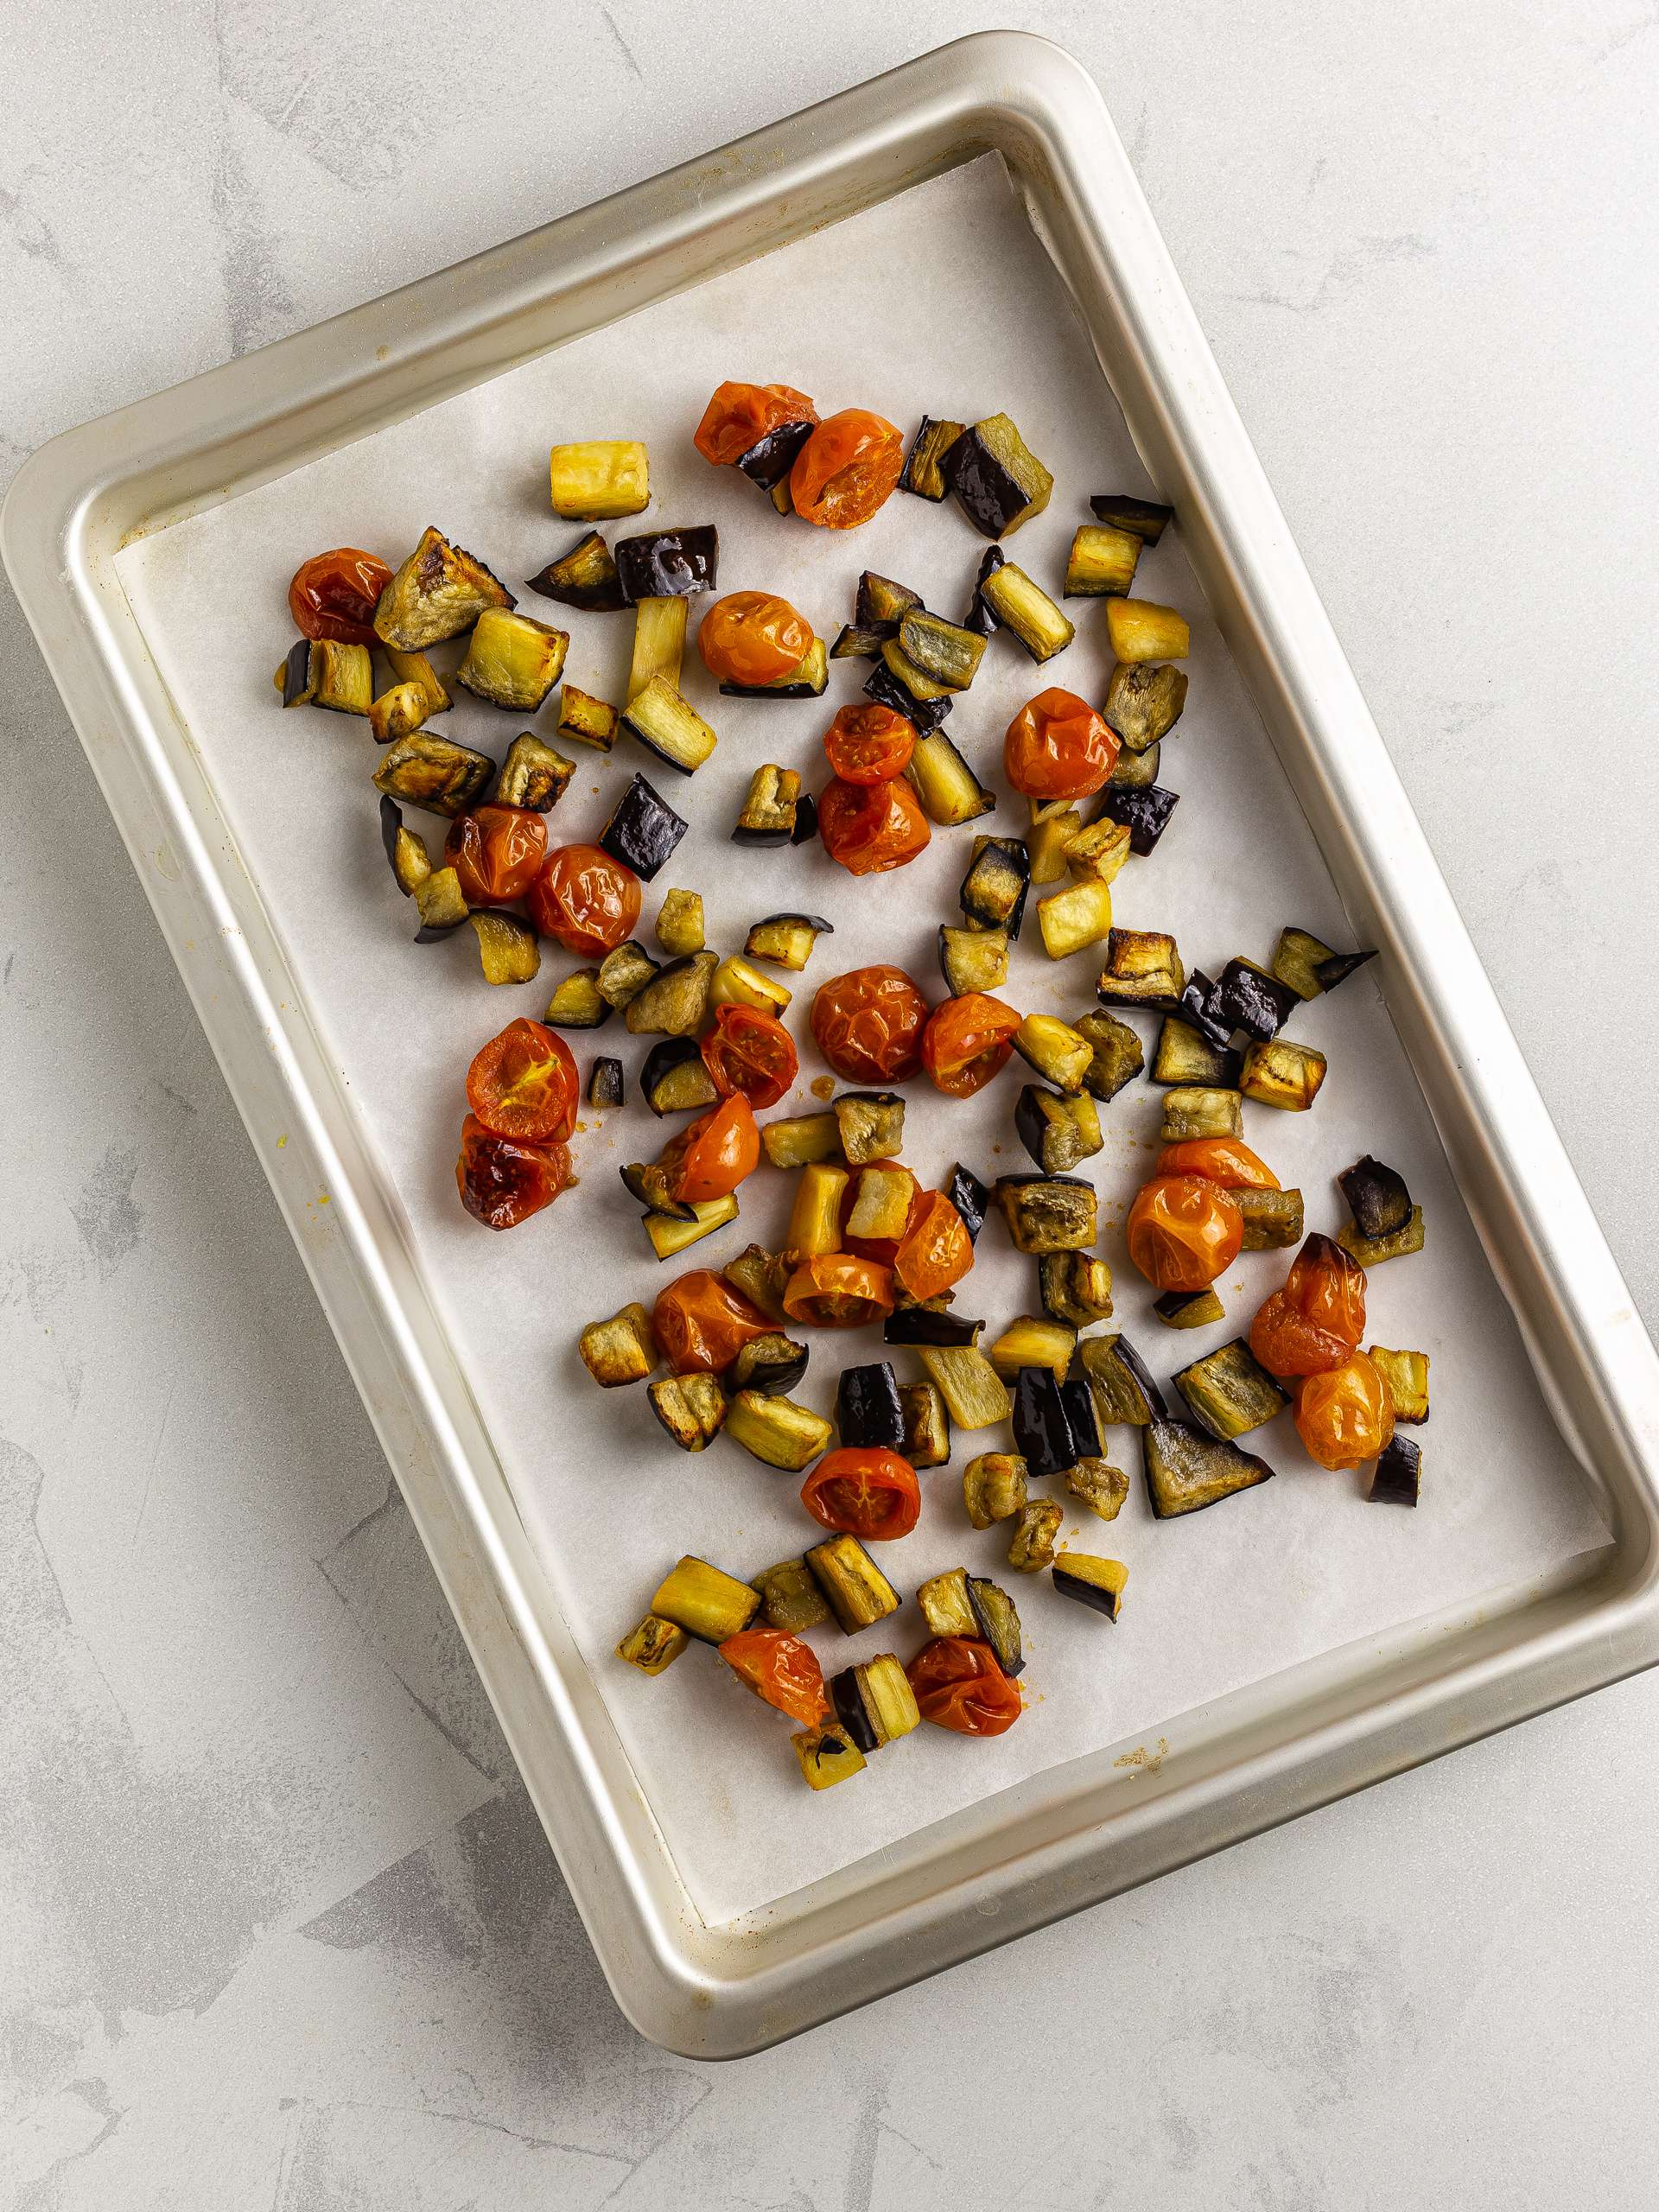 roasted tomatoes and aubergines